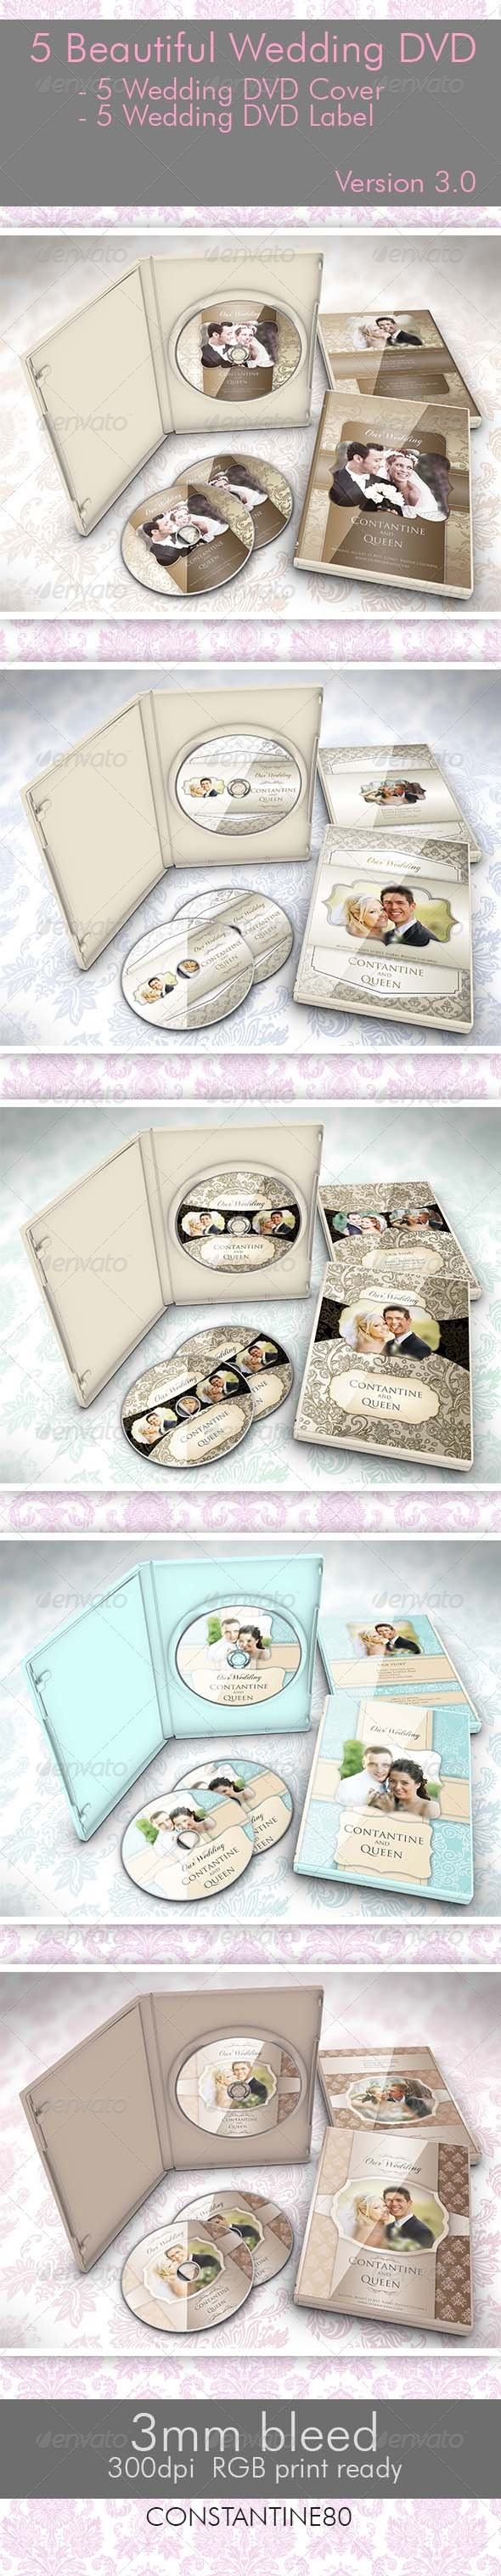 GraphicRiver 5 Beautiful Wedding DVD Ver 3.0 2761859